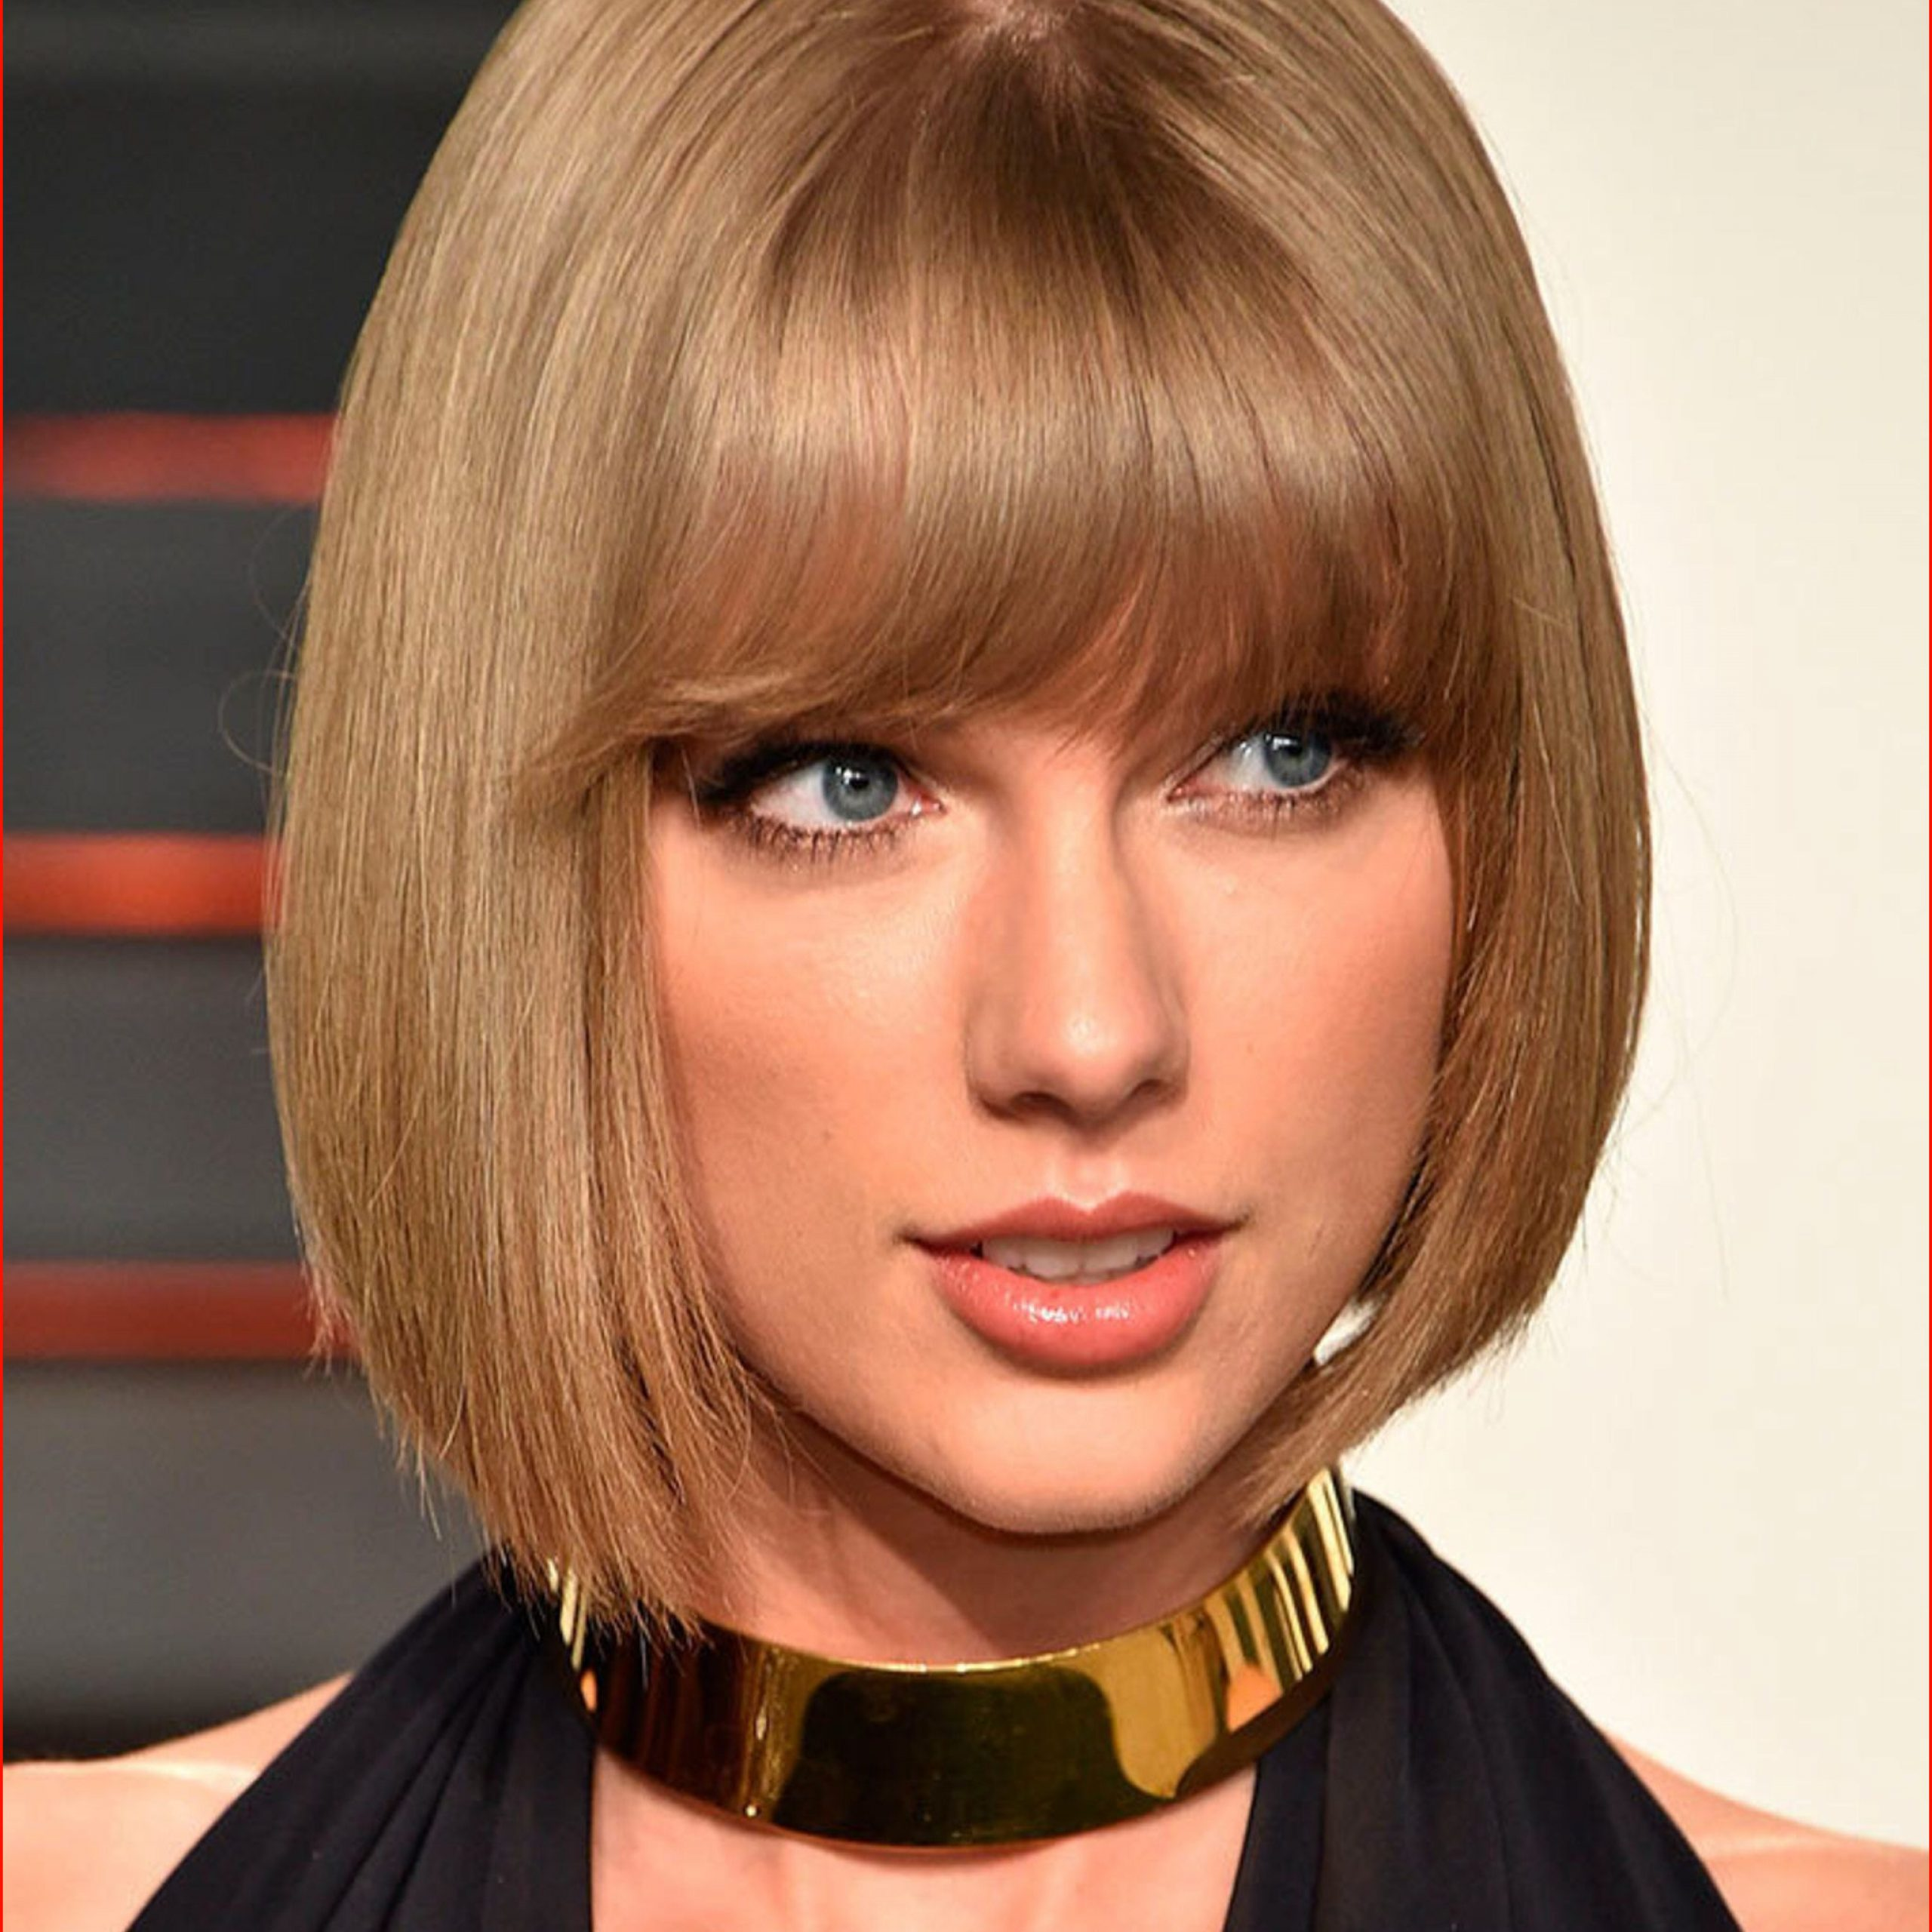 Most Current Bob Hairstyles With Bangs For Trendy Bob Hairstyles With Bangs Archives – Popshopdjs (Gallery 5 of 20)